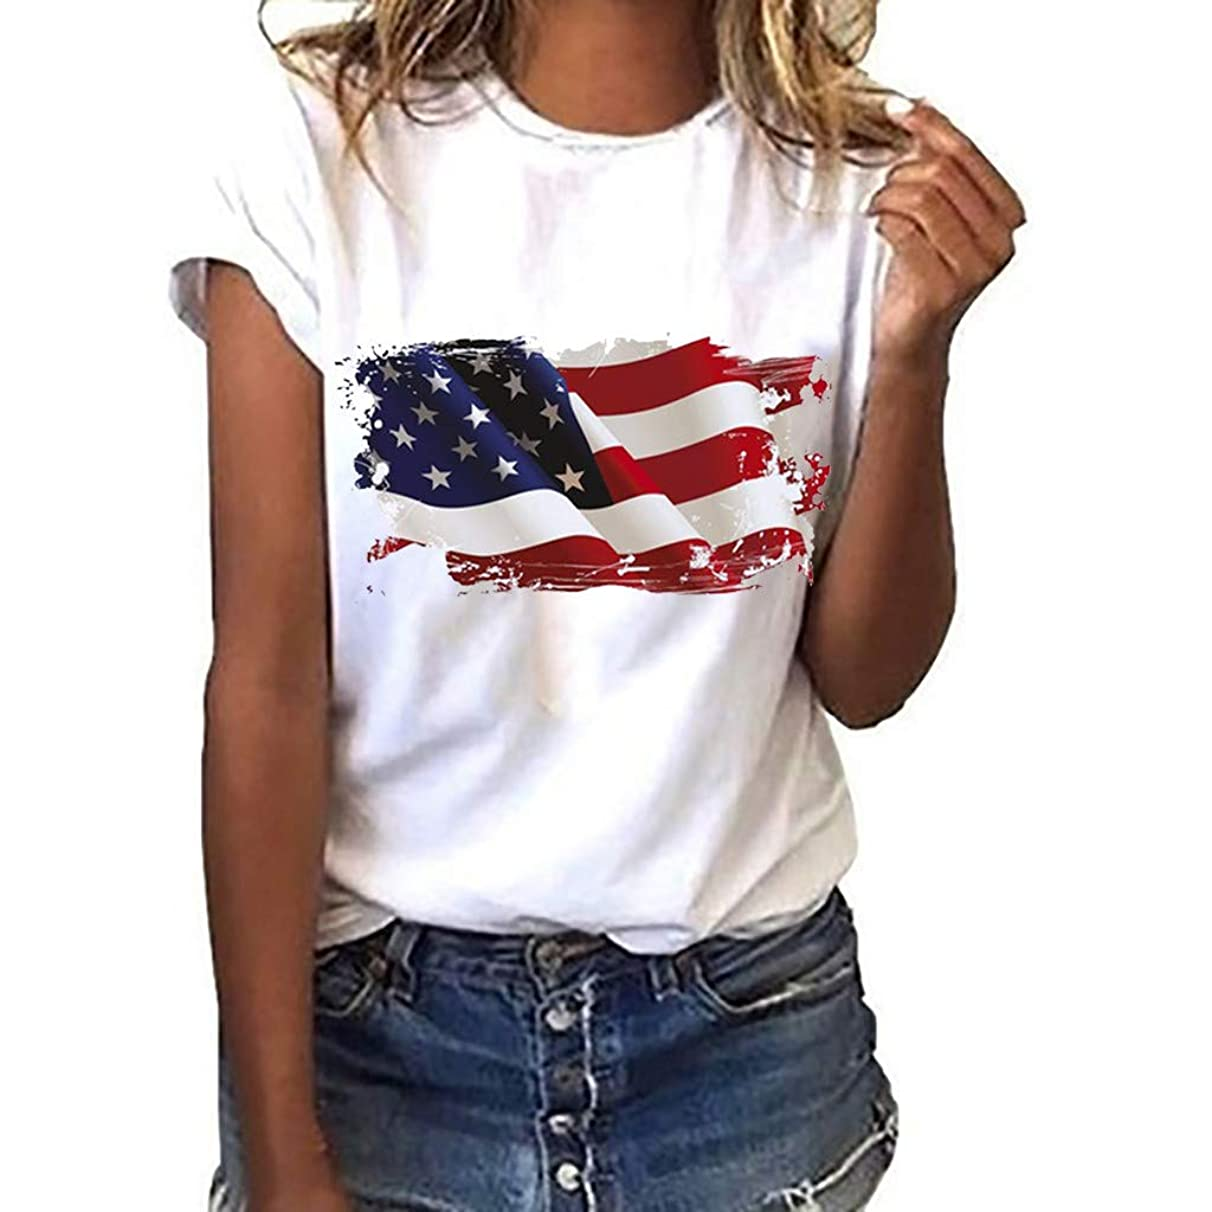 Weiliru Independence Day Women Plus Size Flag Printed Short Sleeve T-Shirt Tops